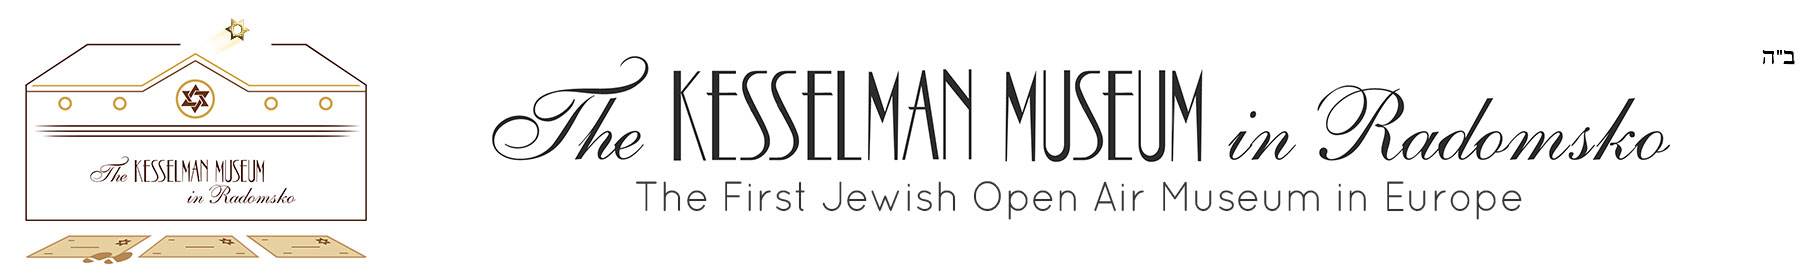 The Kesselman Museum Logo